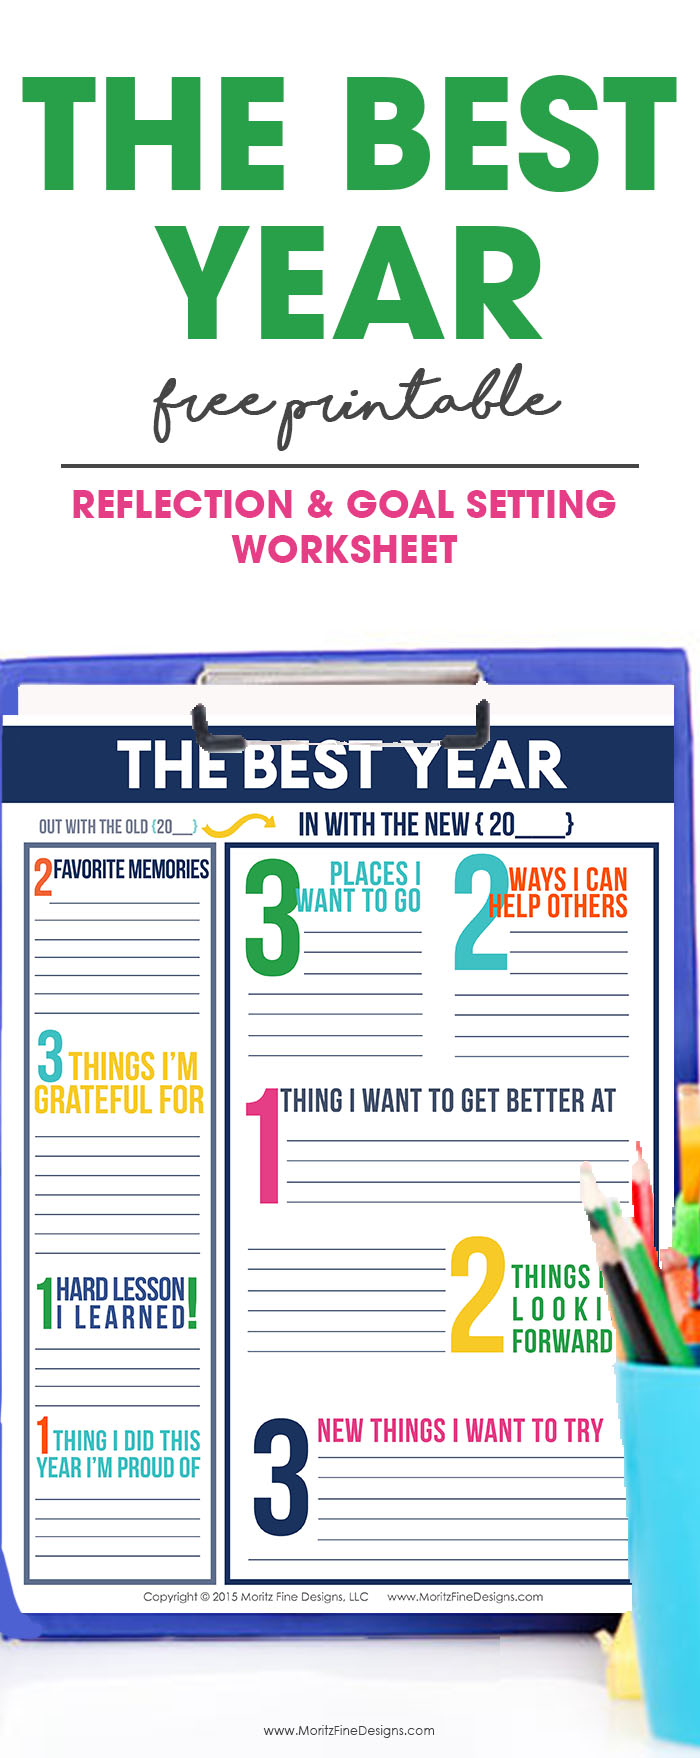 It's time to reflect on the past year and set goals for the new year using the Reflection & Goal Setting Worksheet. This worksheet is perfect for kids, adults, co-workers and more. Download now for free. #goalsetting #goalsettingforkids  #goalsettingworksheet  #newyeargoalsideas #freeprintable